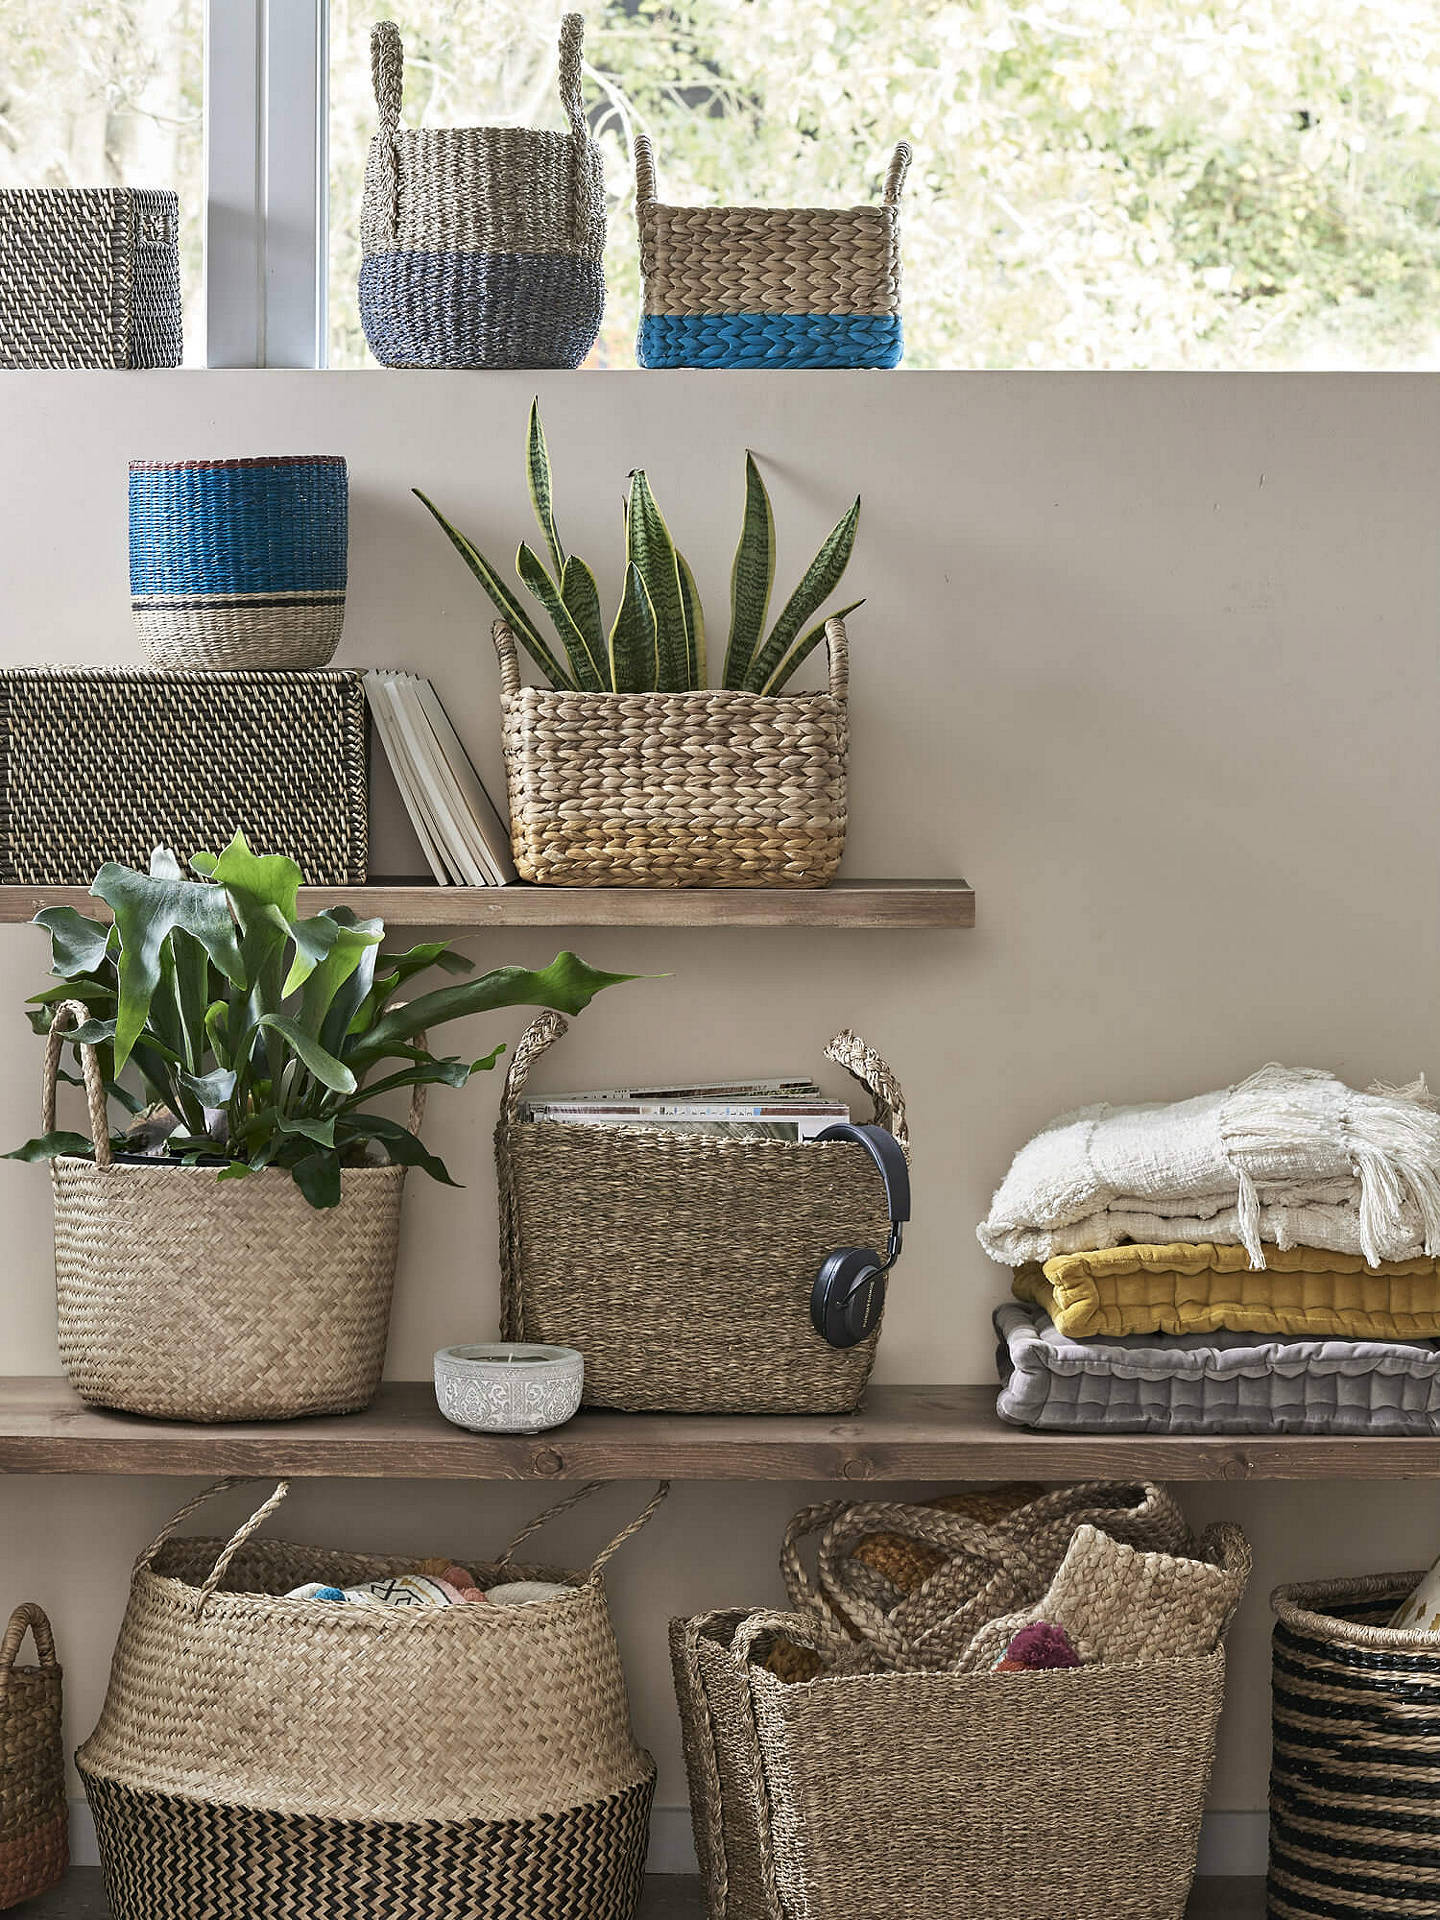 BuyJohn Lewis & Partners Fusion Natural Seagrass Basket Online at johnlewis.com